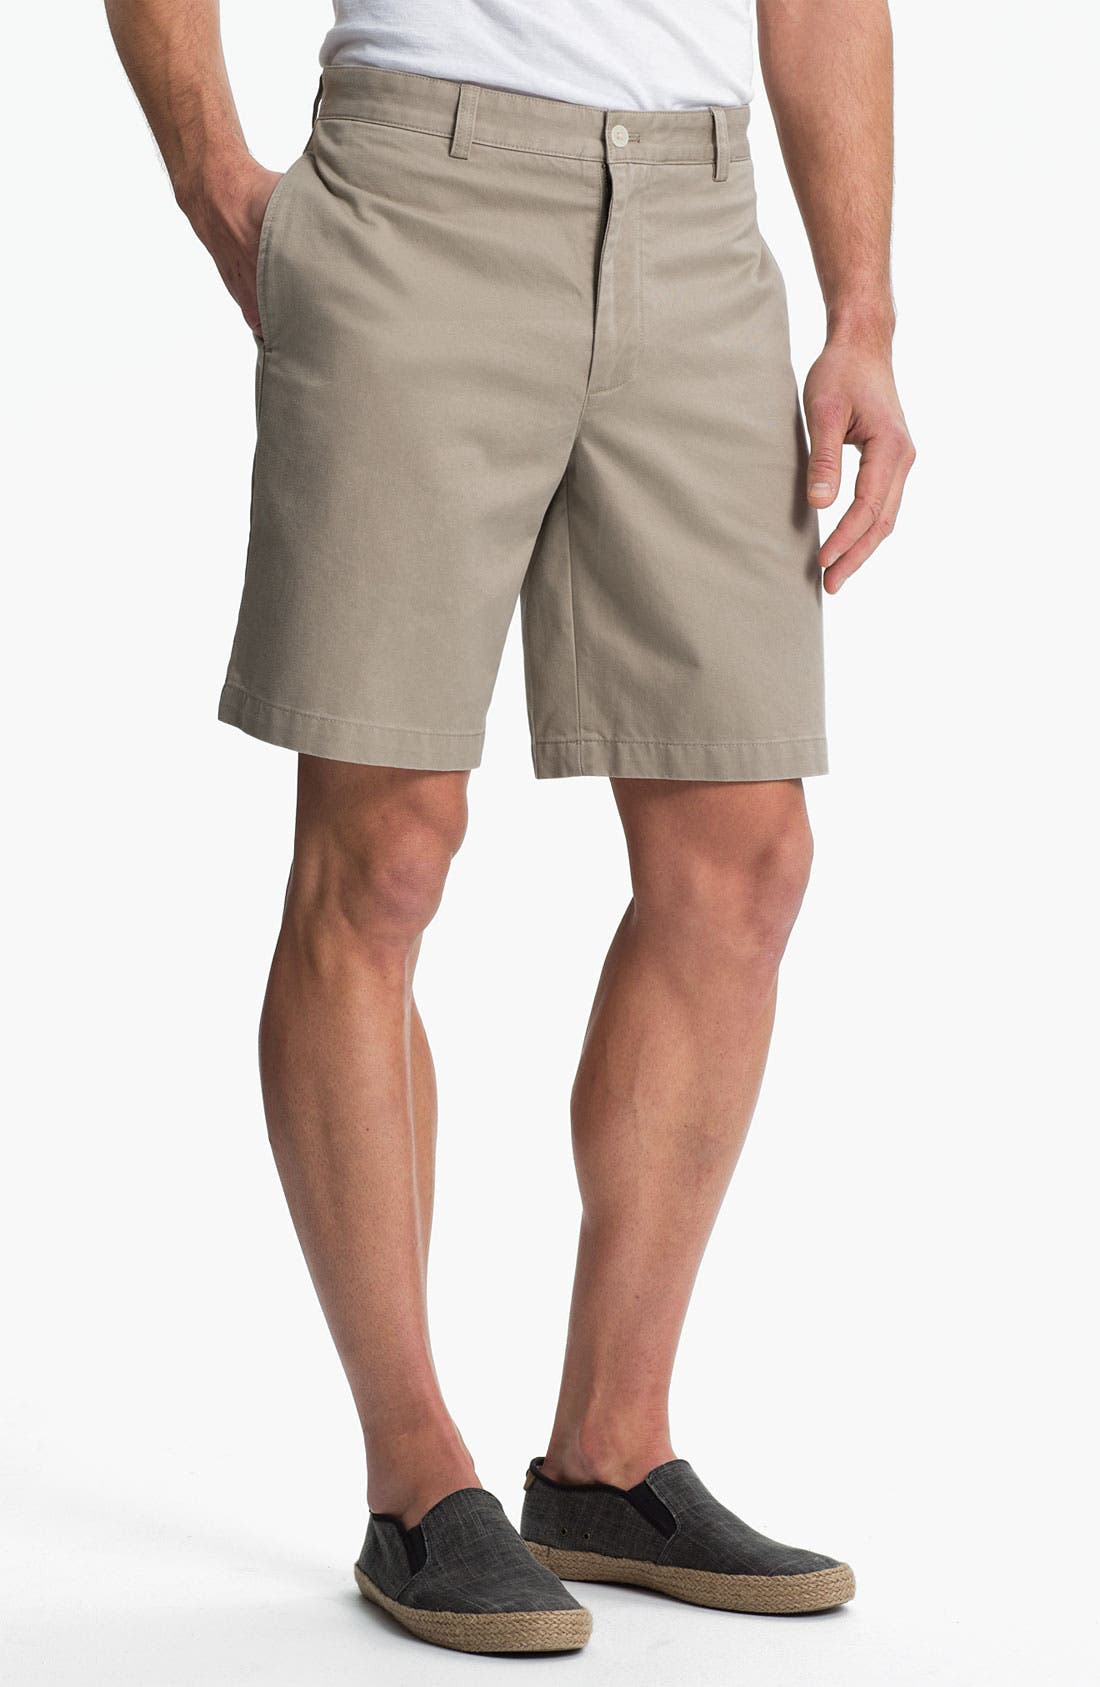 Alternate Image 1 Selected - Vineyard Vines 'Club' Flat Front Twill Shorts